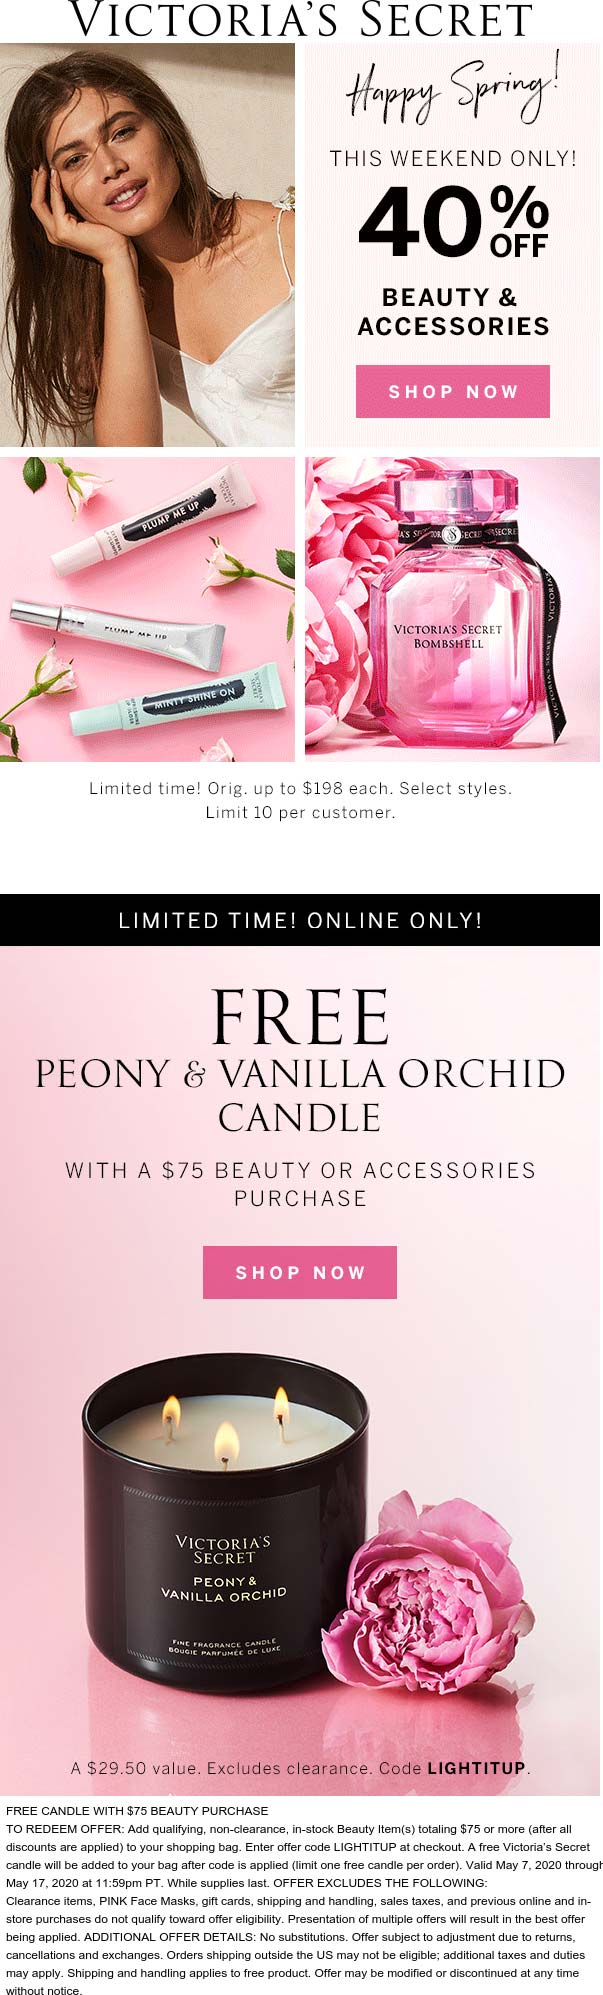 40% off beauty & accessories + free candle on $75 at Victorias Secret #victoriassecret